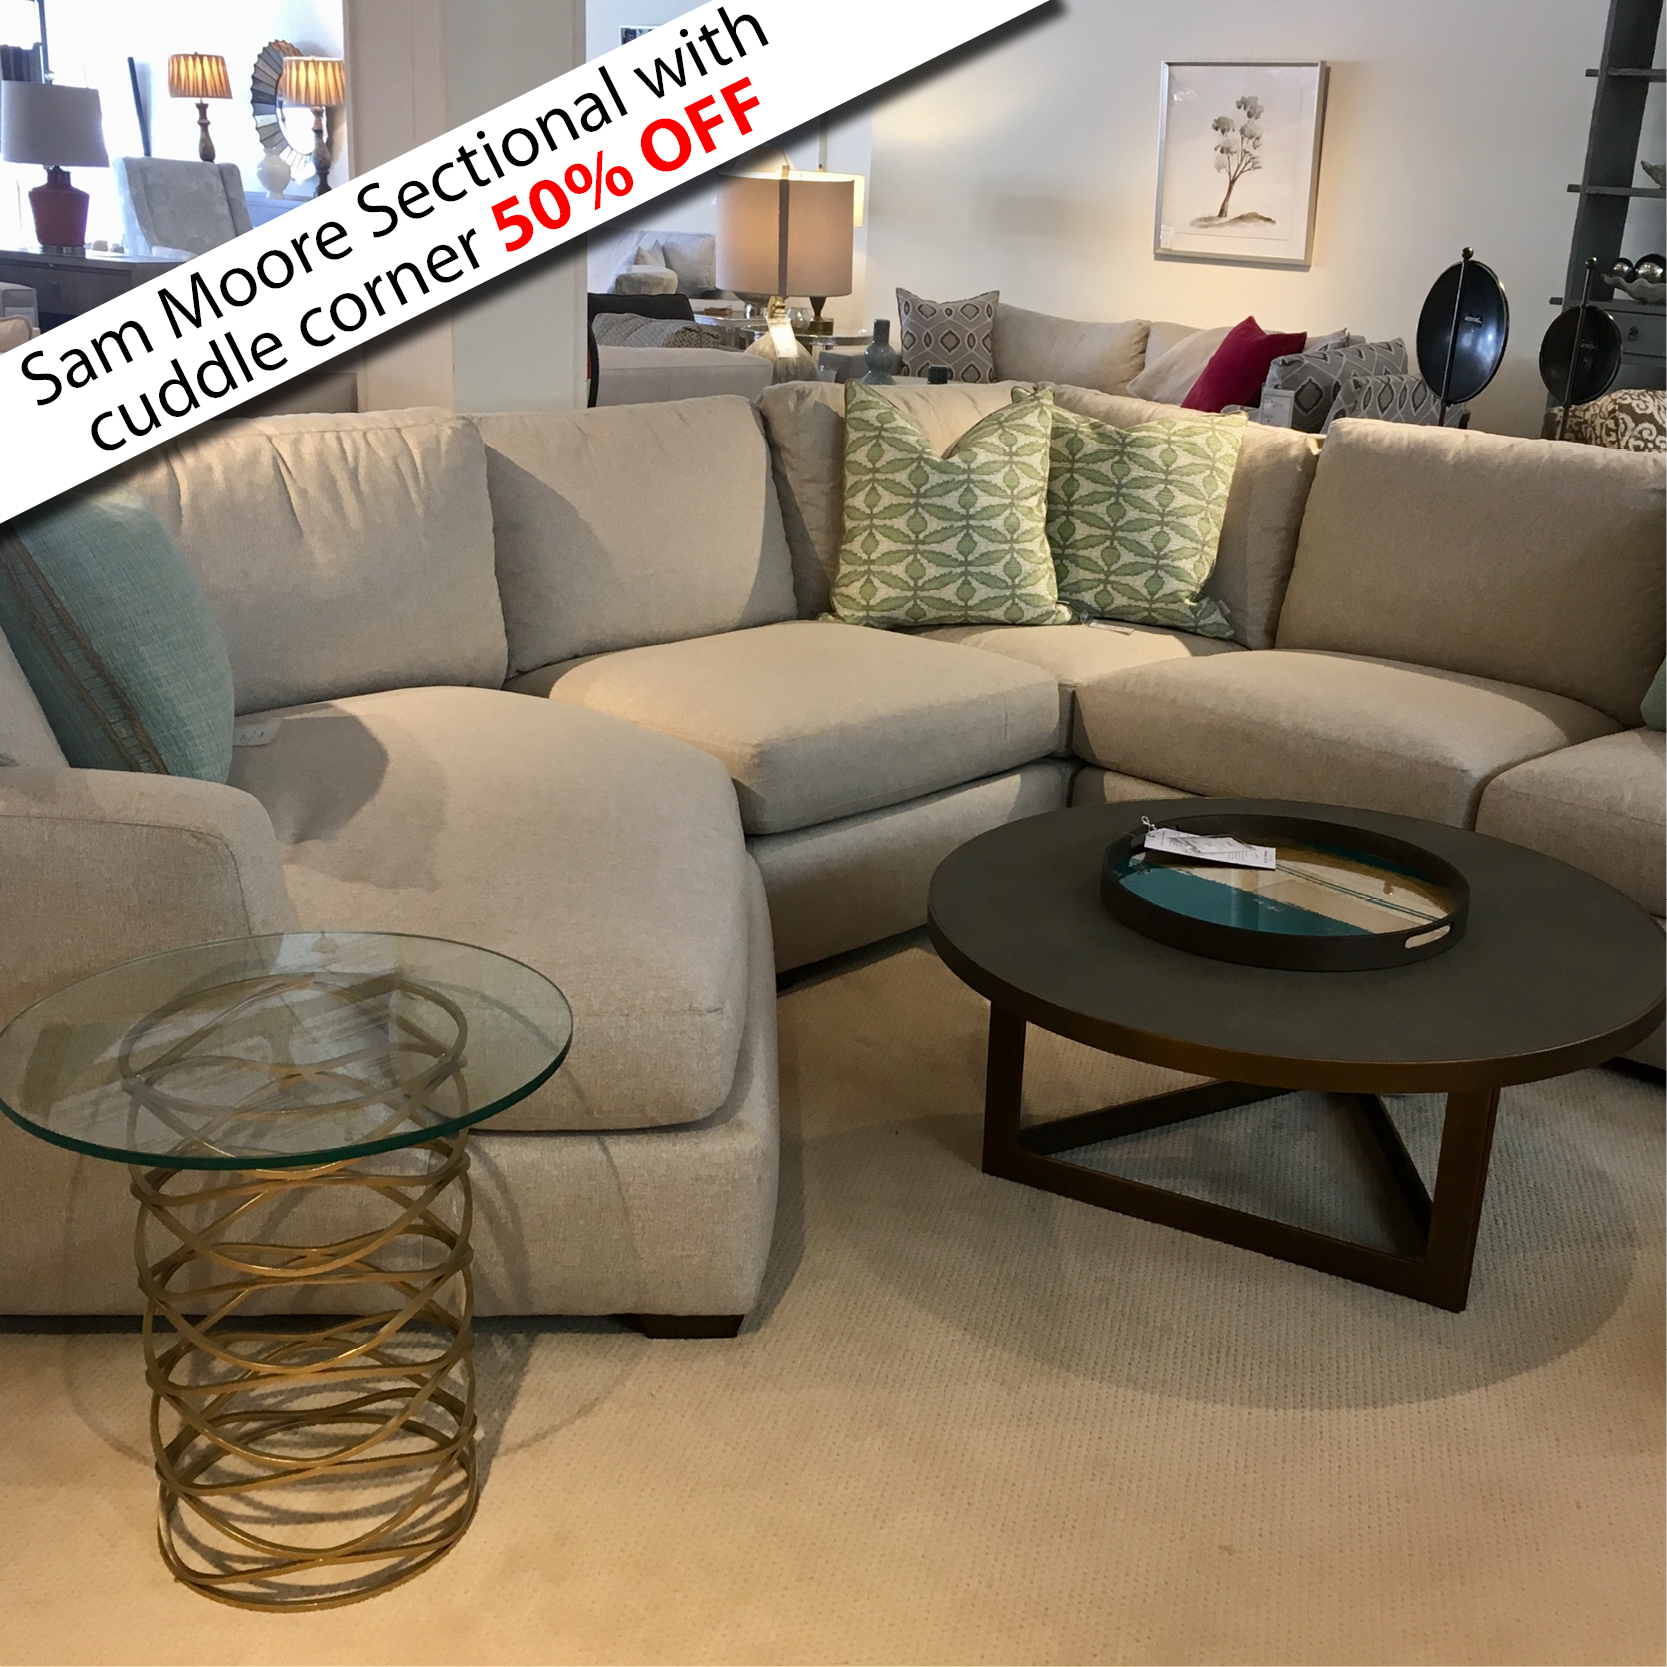 Clearance Corner -Furniture Clearance - Sofa Clearance ...